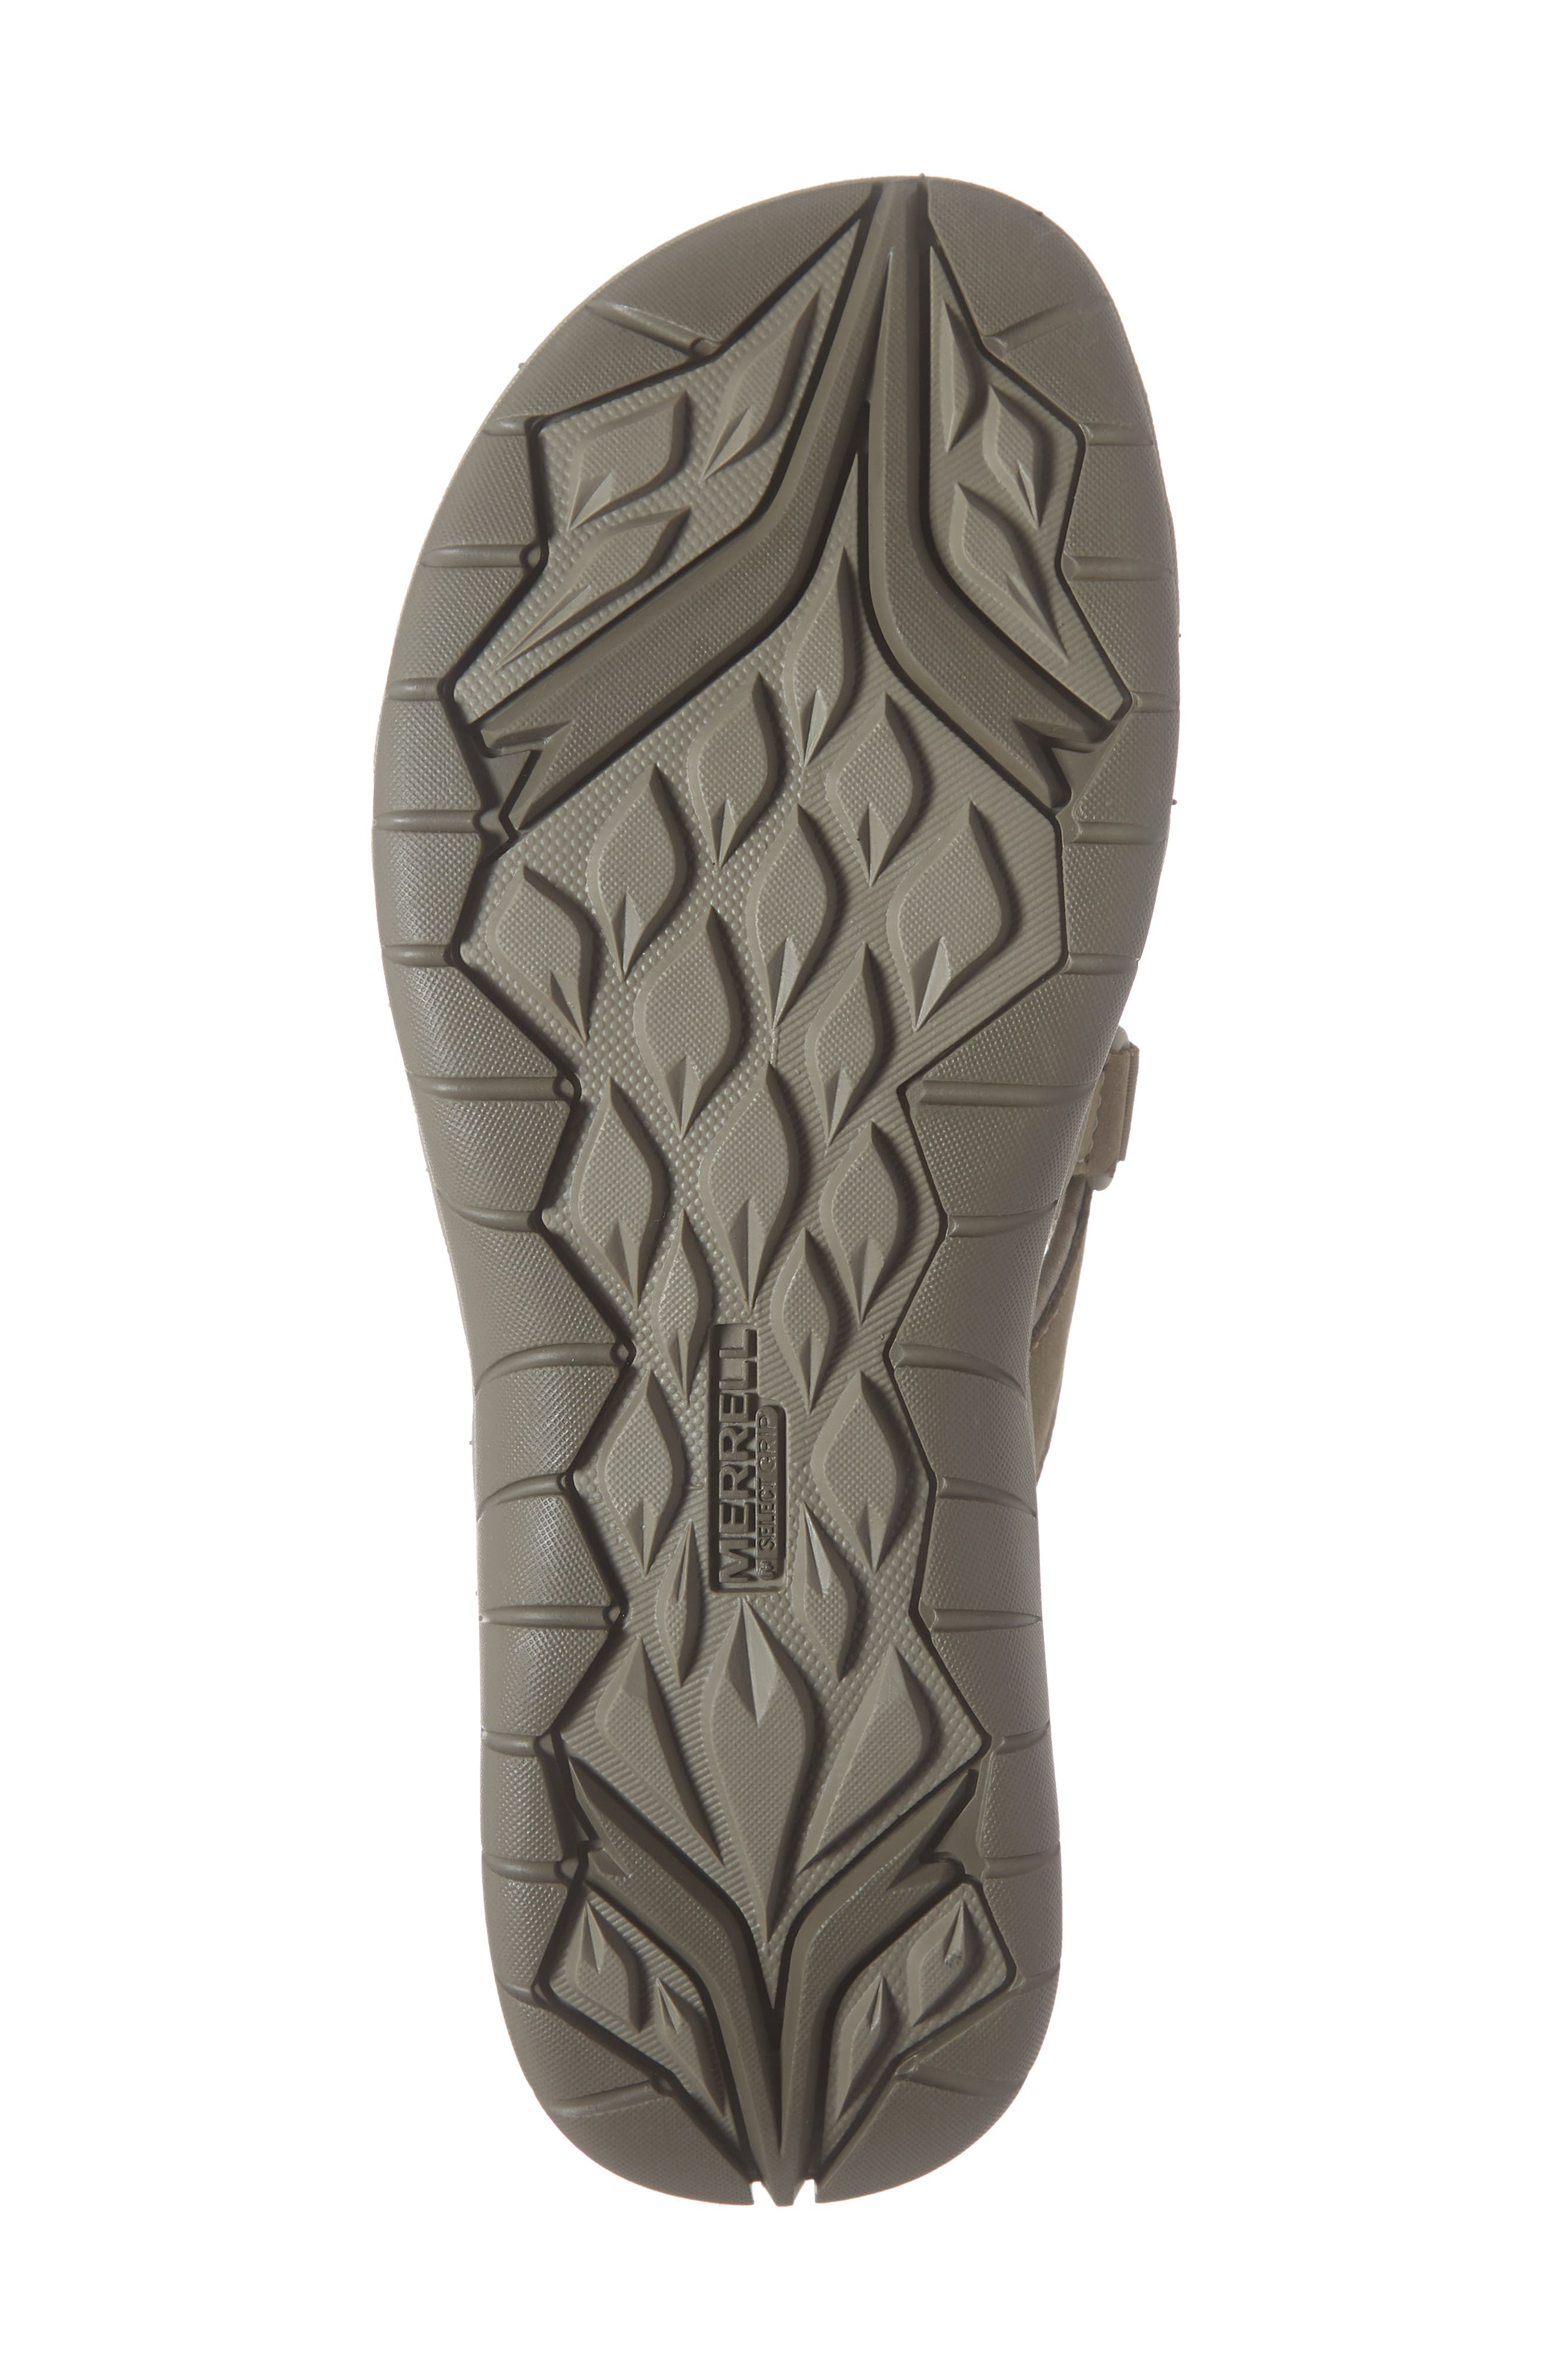 MERRELL, Siren Flip Q2 Waterproof Sandal, Alternate thumbnail 6, color, BRINDLE FABRIC